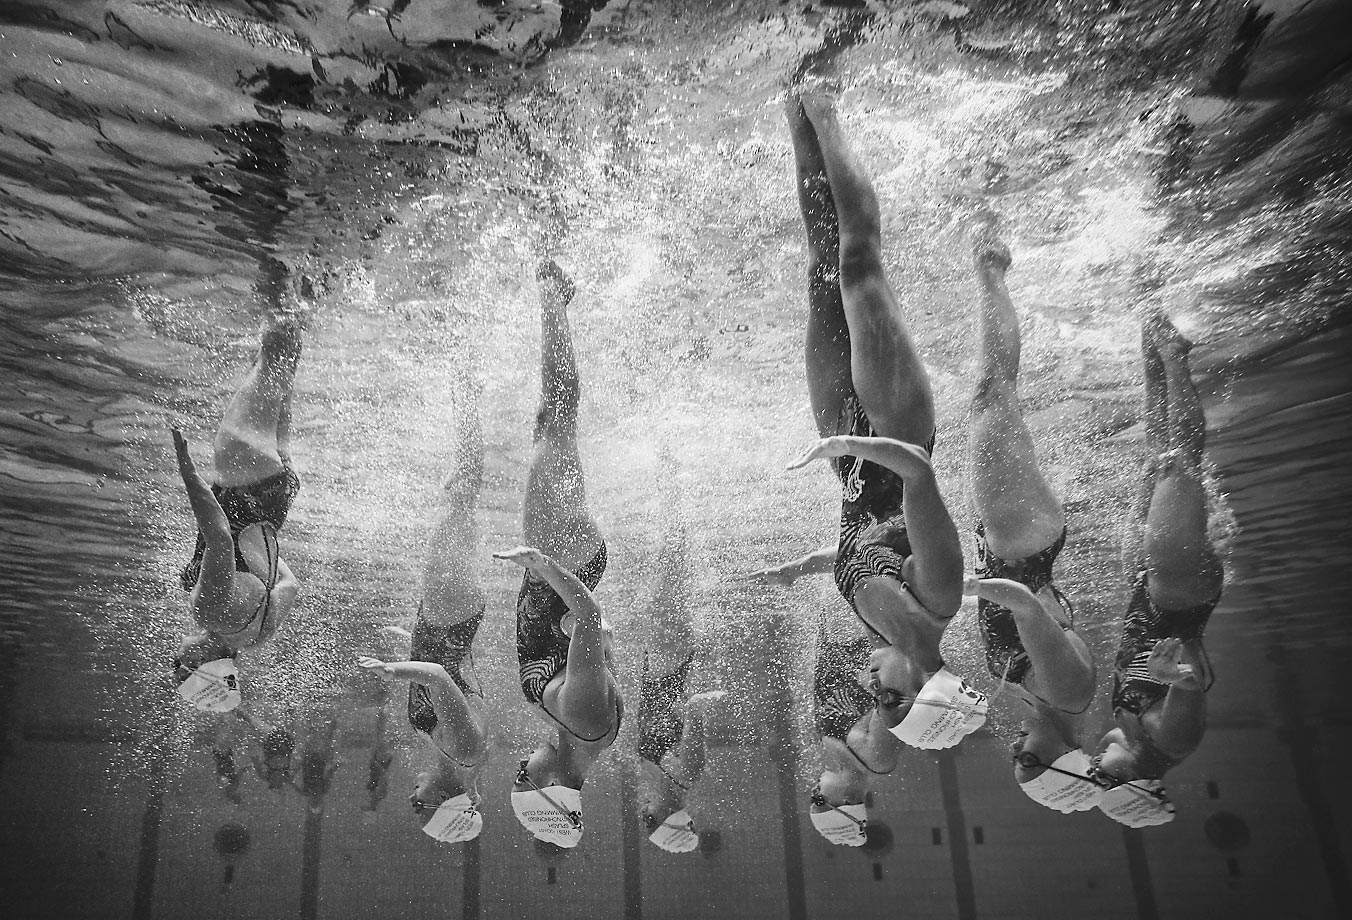 The West Coast Splash team, from Western Australia, competes in the Synchronised Swimming National Championships in Sydney, Australia.